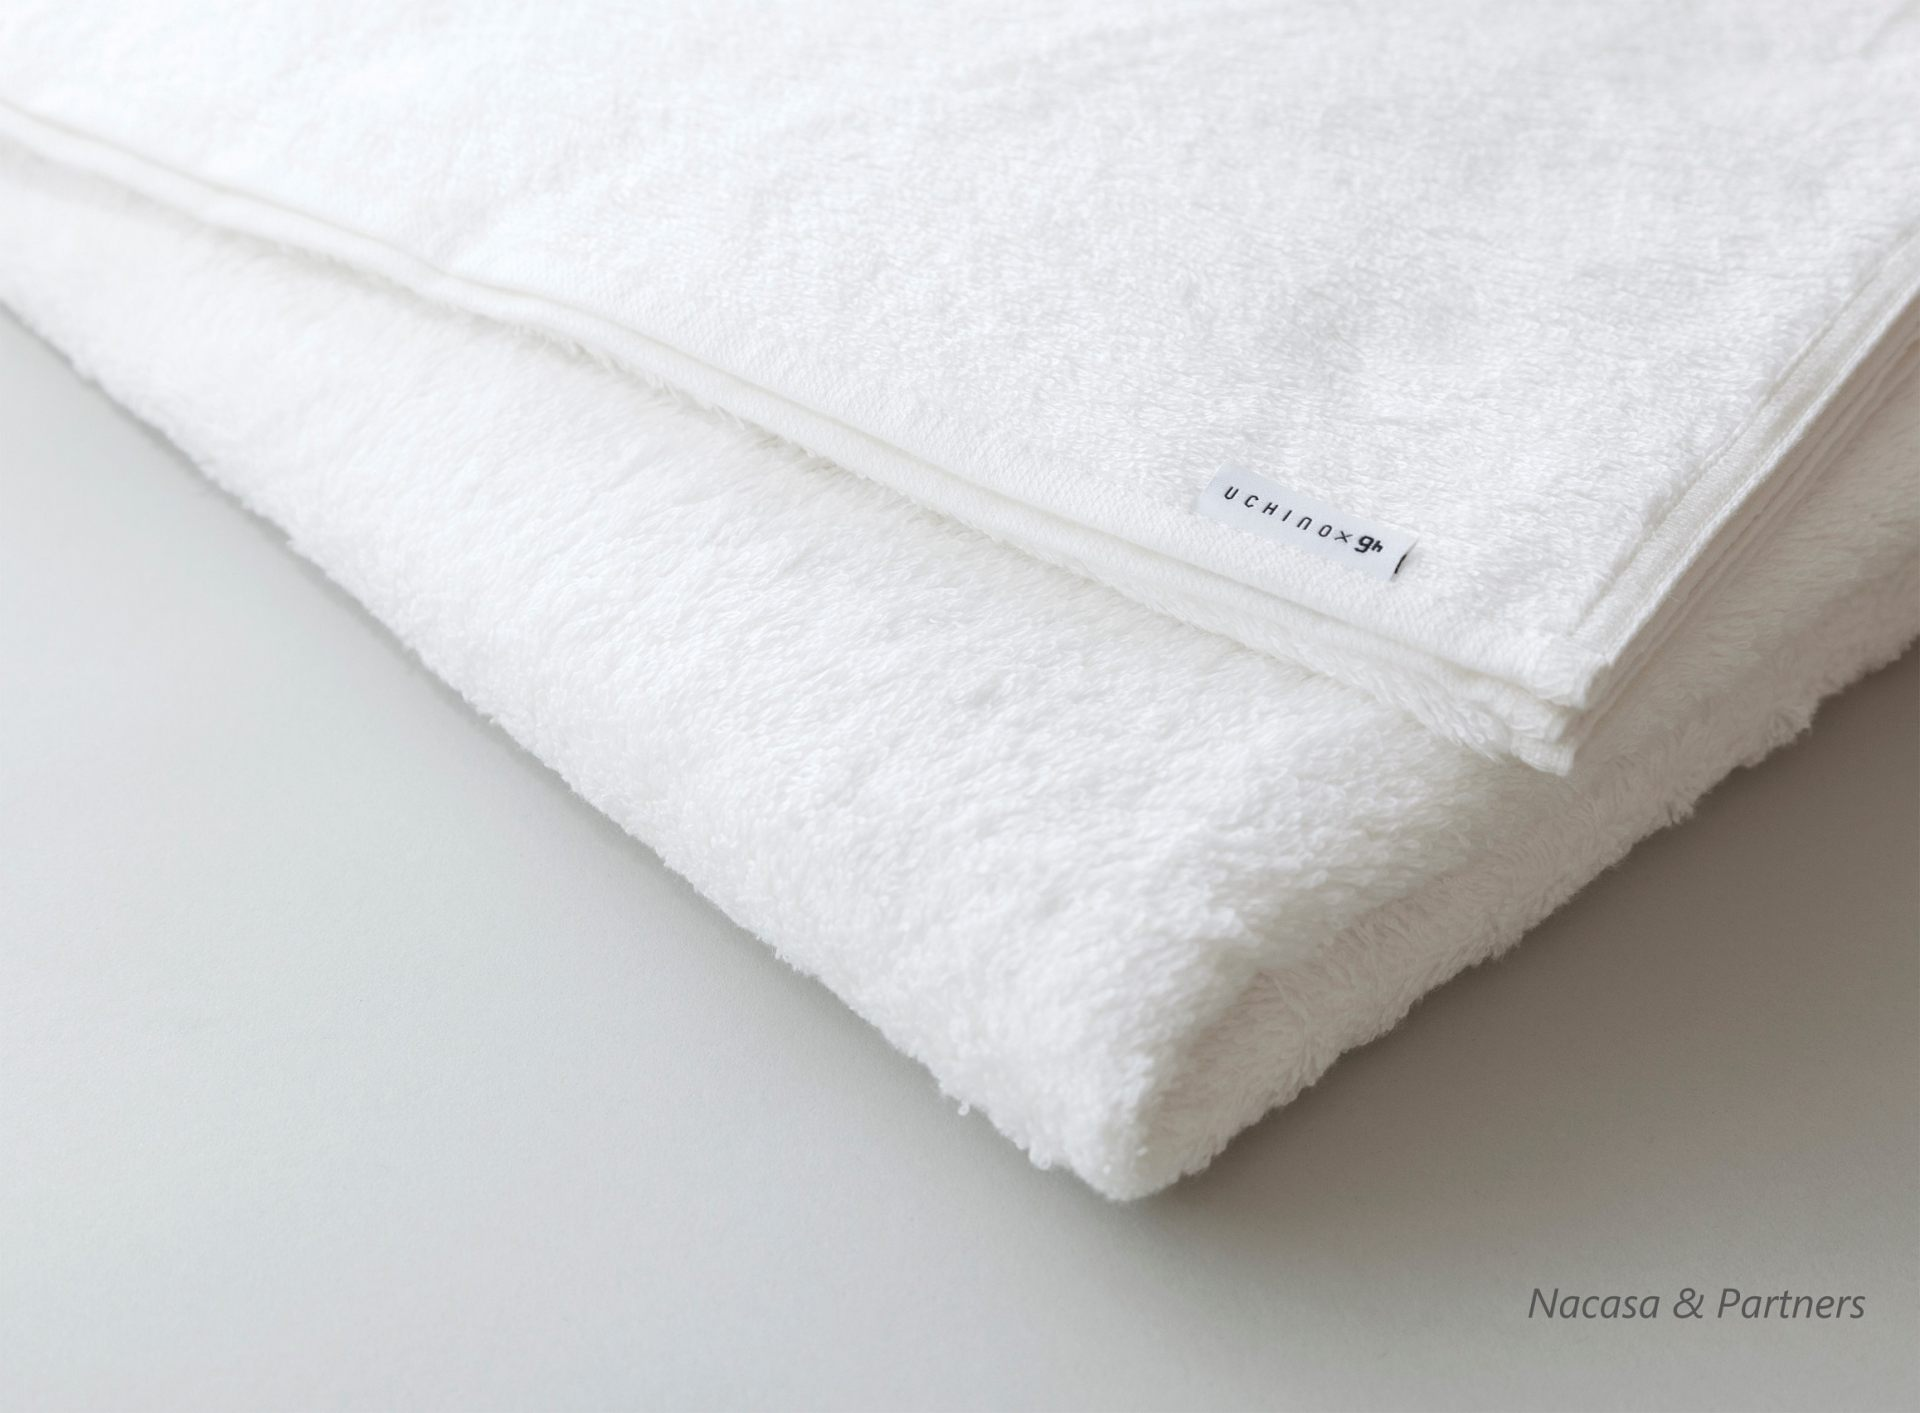 A soft long bath towel